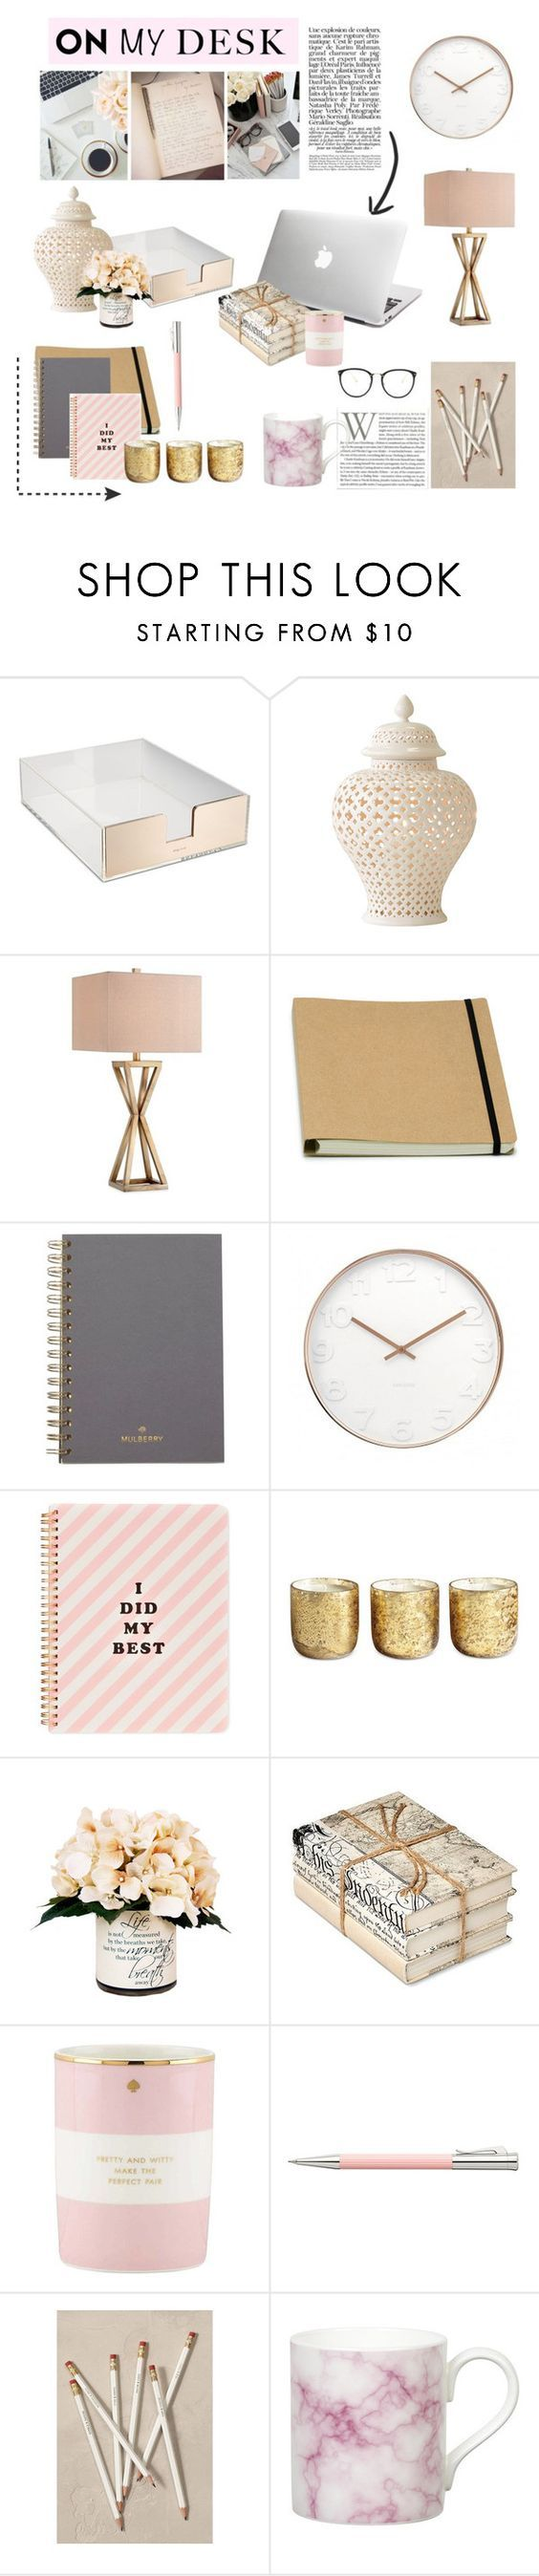 """""""17.08.2016"""" by desdeportugal on Polyvore featuring interior, interiors, interior design, home, home decor, interior decorating, GiGi New York, Kate Spade, Catalina and Mulberry"""